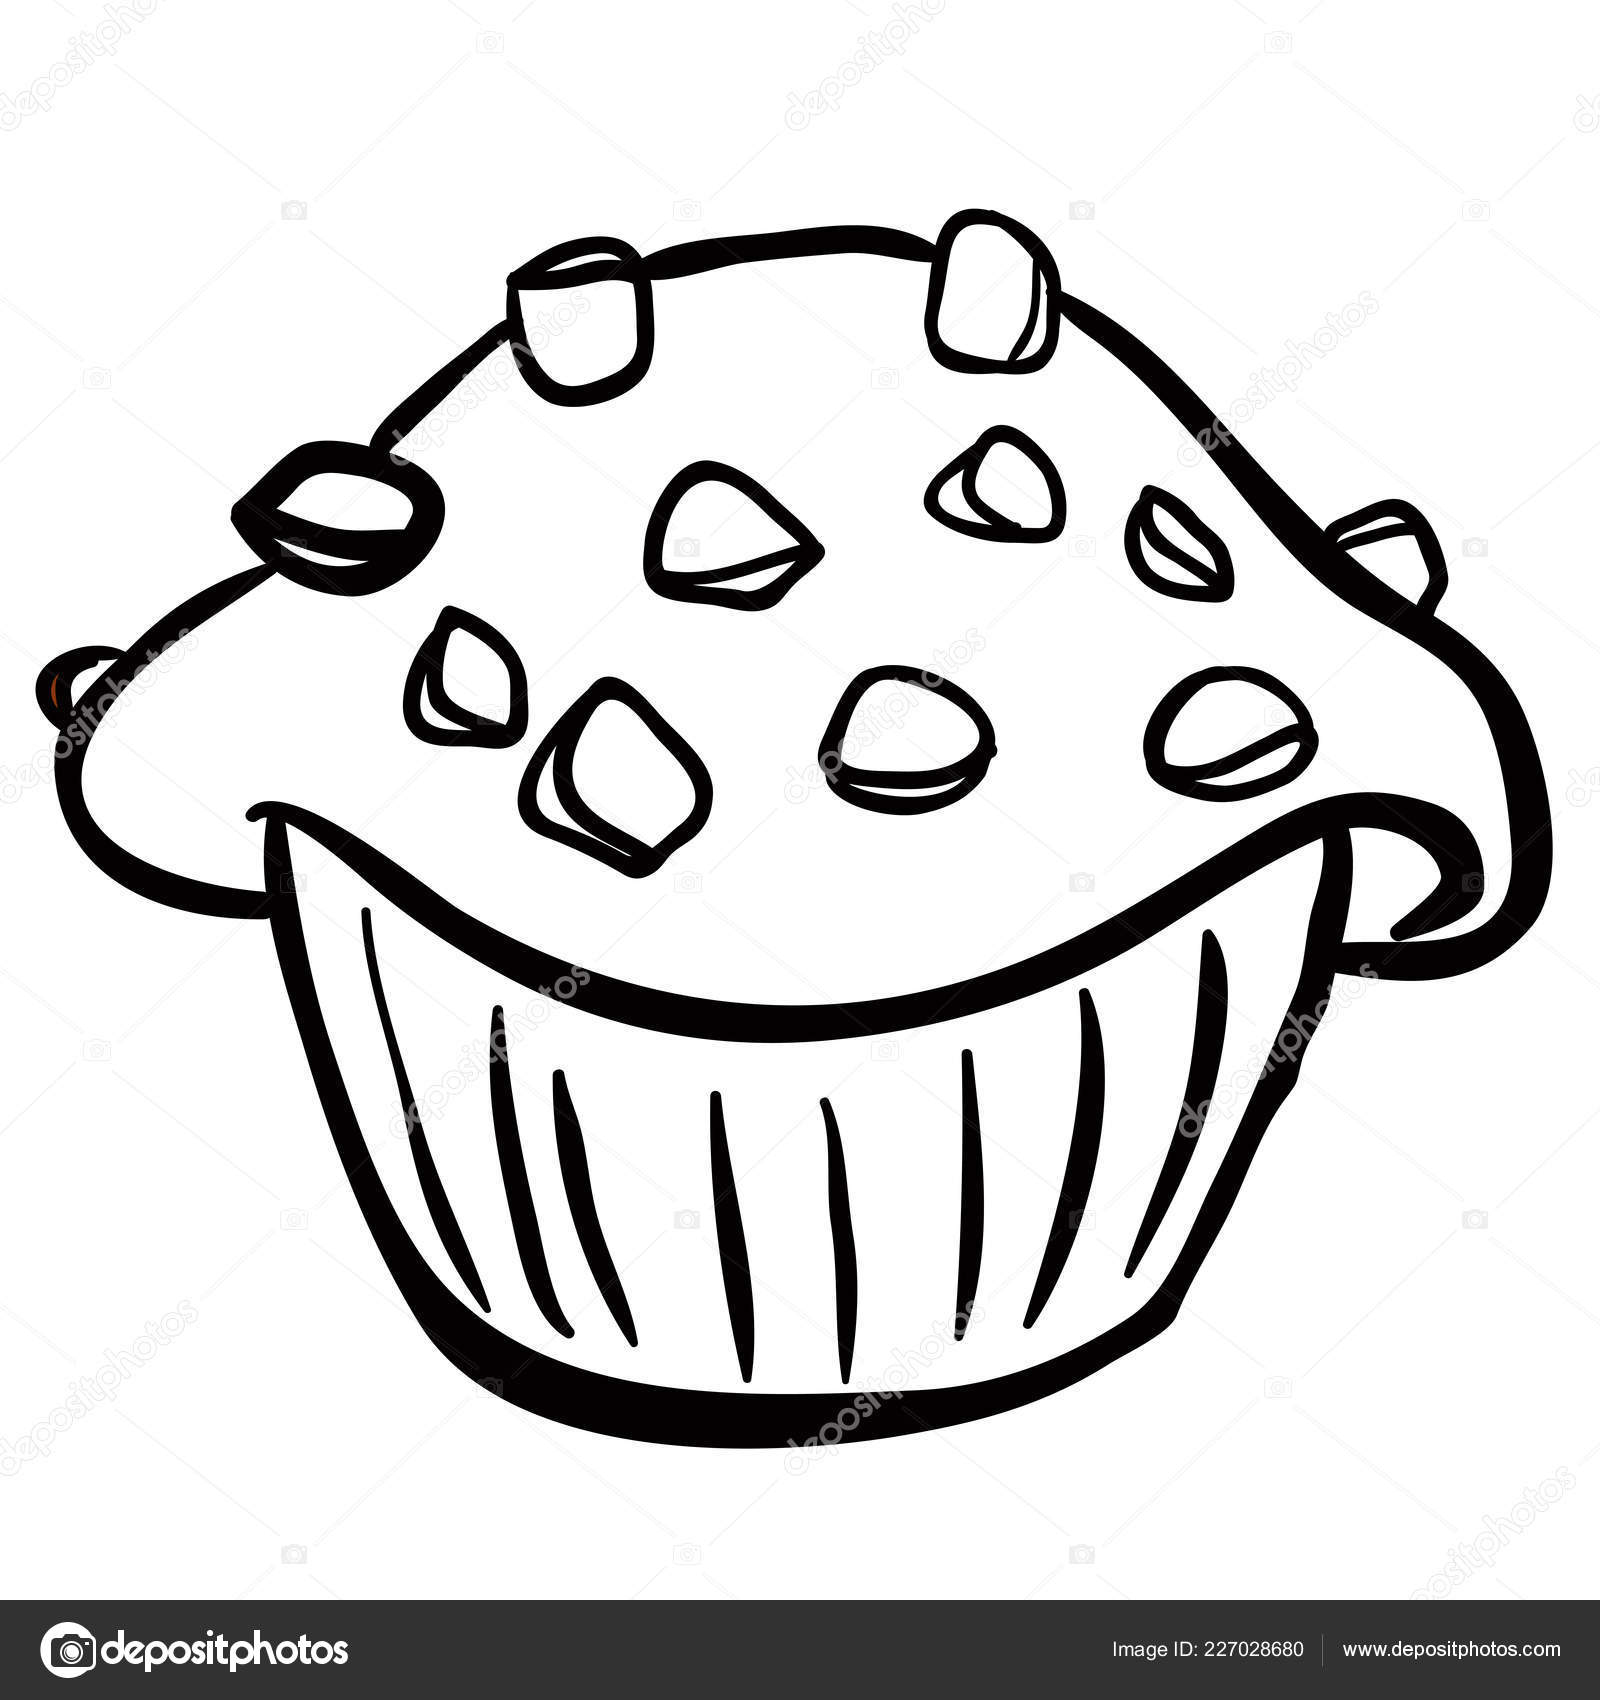 Vector White Chocolate Chips Black White Chocolate Chip Muffin Cartoon Stock Vector C Ainsel 227028680